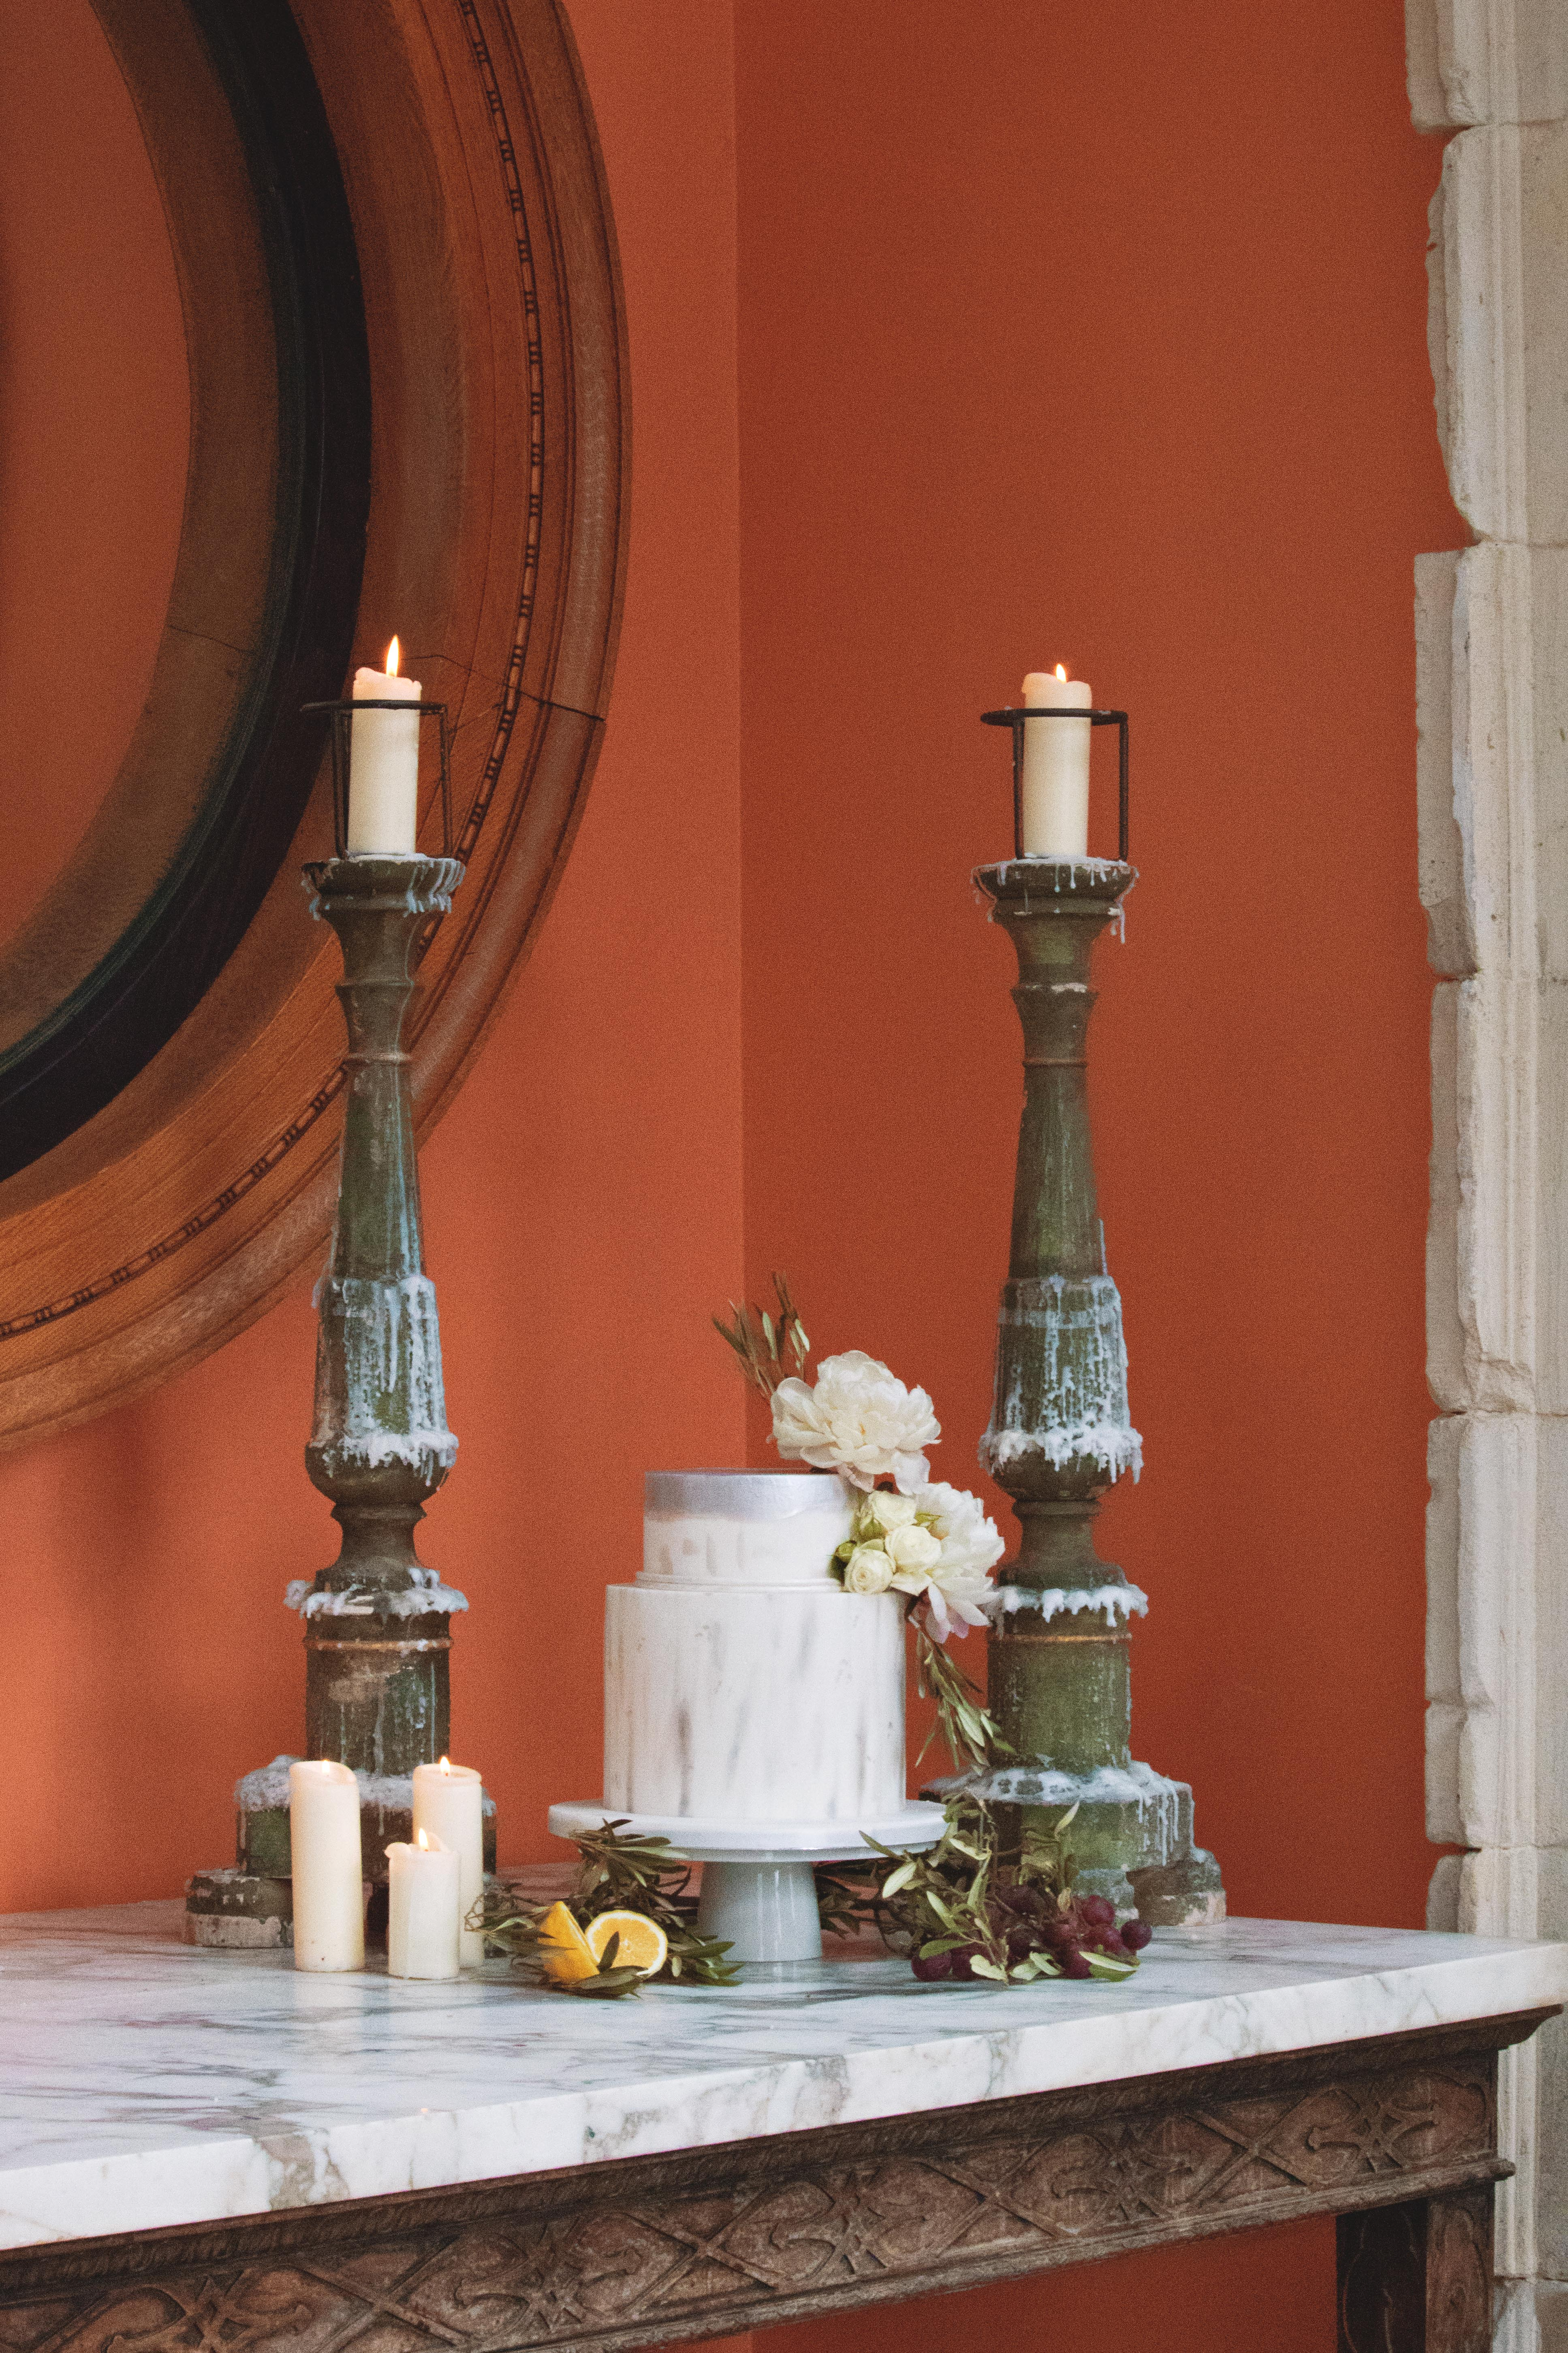 Euridge Manor Tuscan Themed Cake Table at Euridge Manor